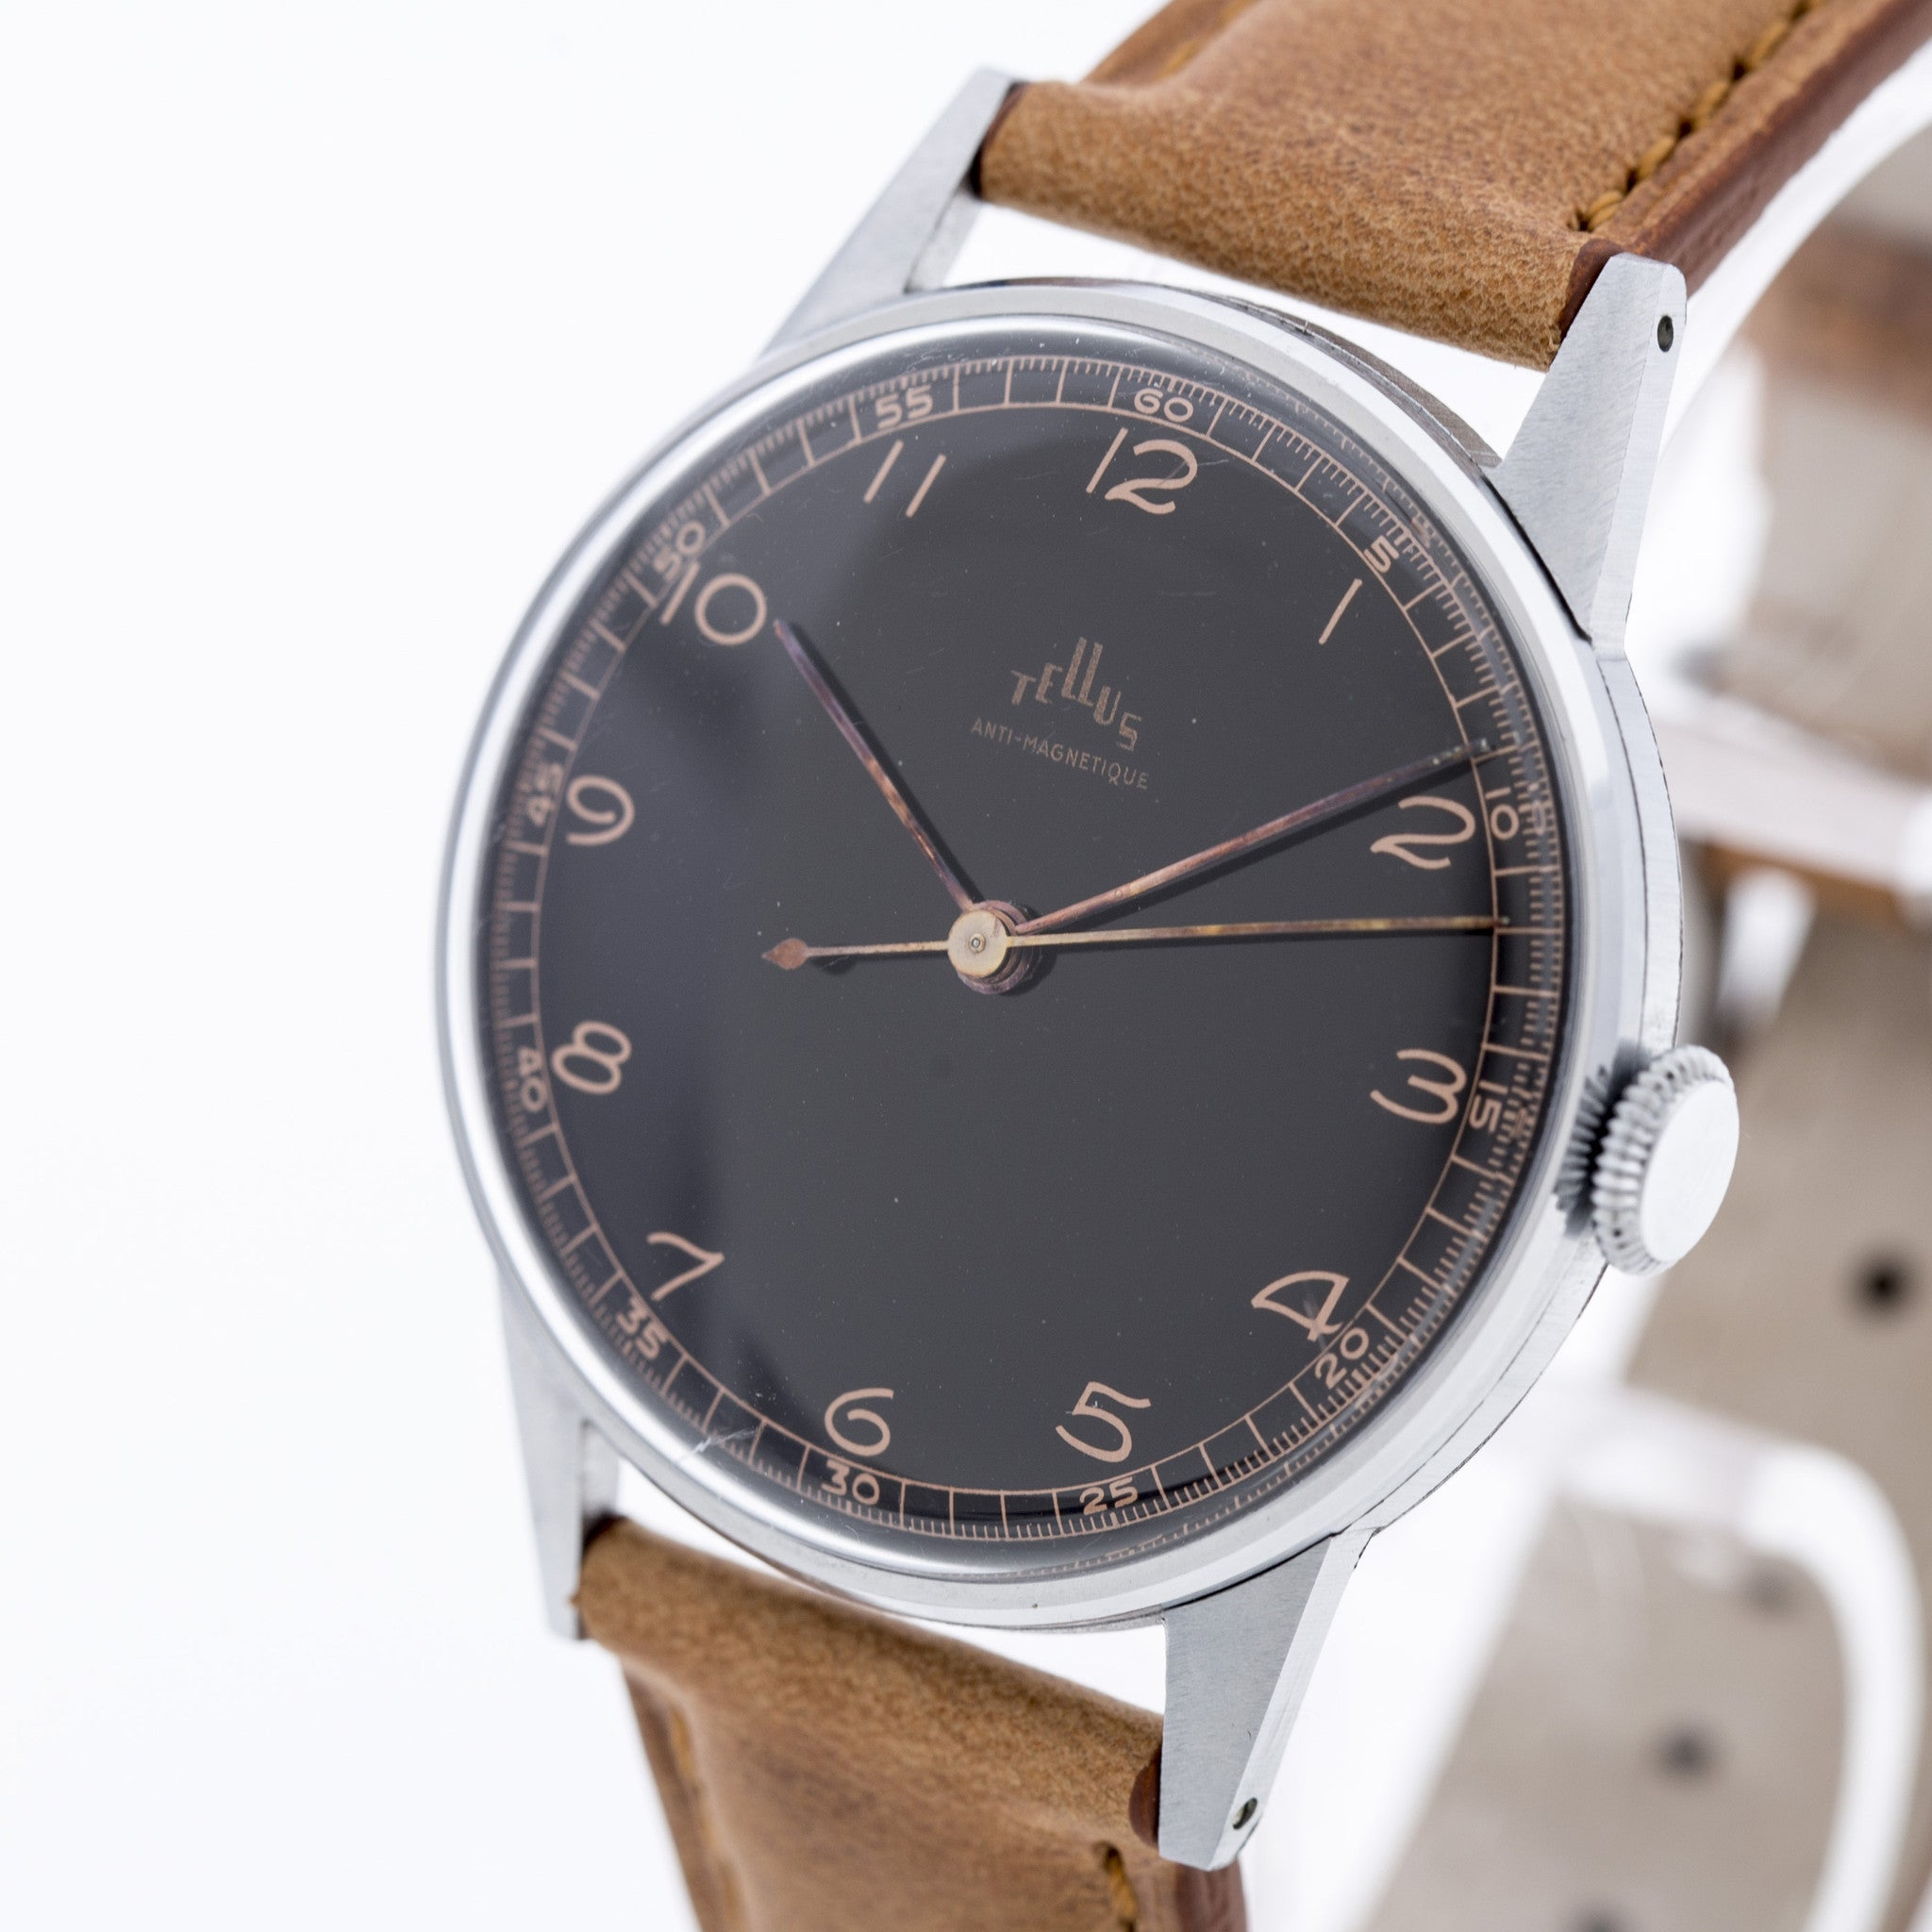 review roundup watches height bauhaus automatic rodina reviews photo watch